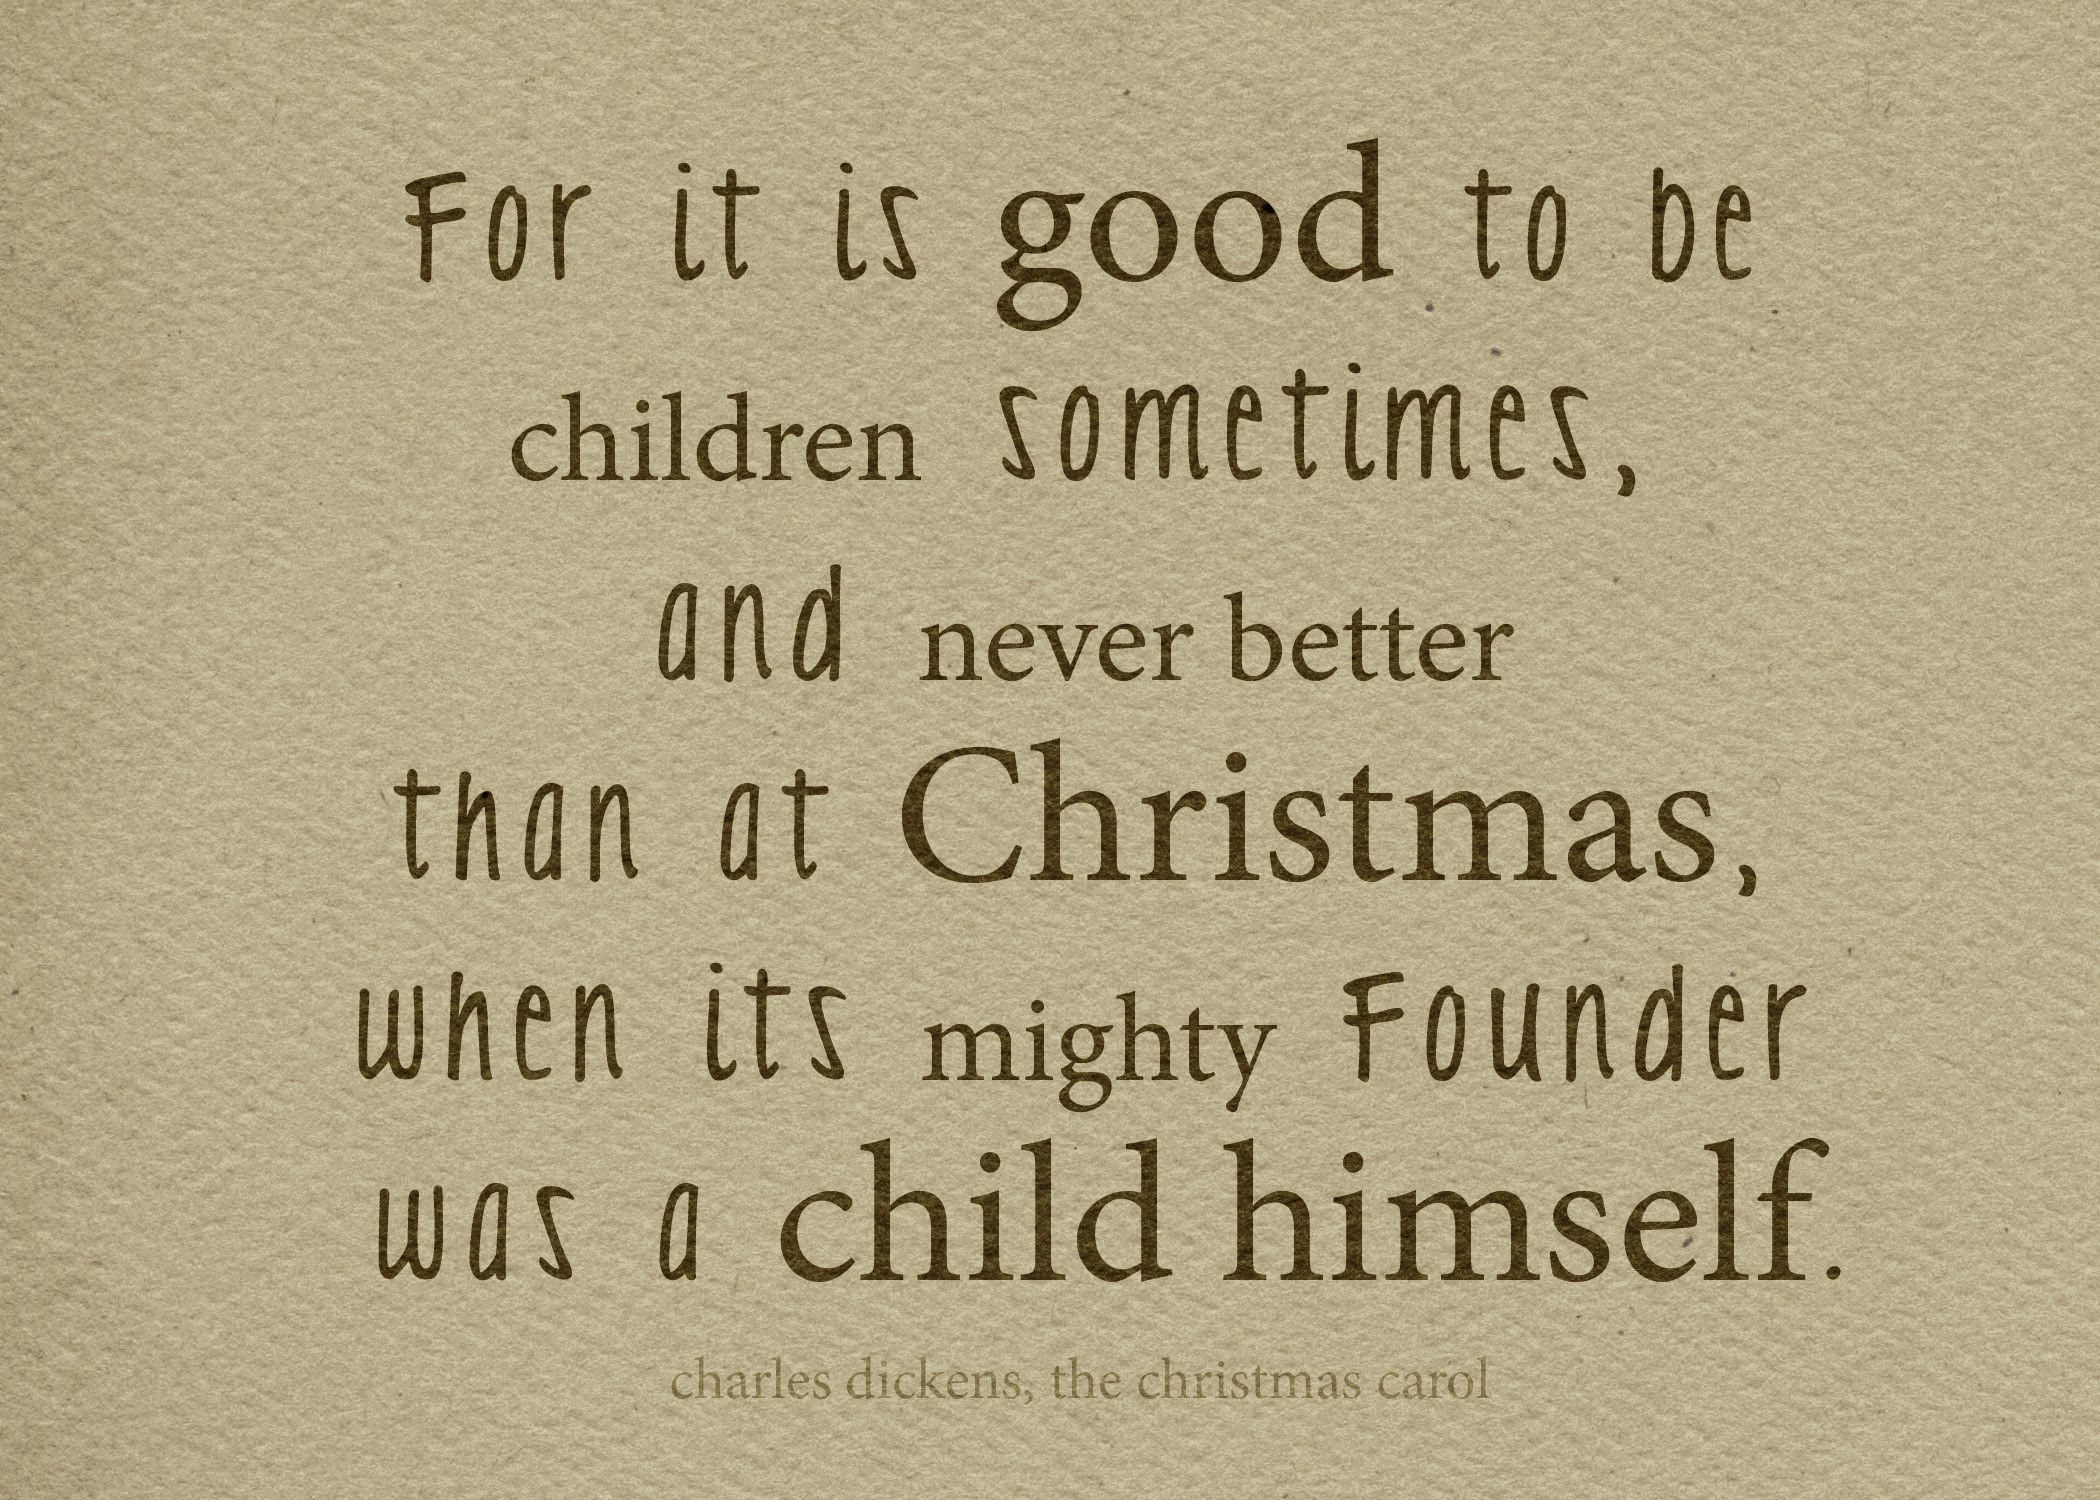 Like a child be especially at christmas whose founder was a child himself beautiful quote from charles dickens a christmas carol